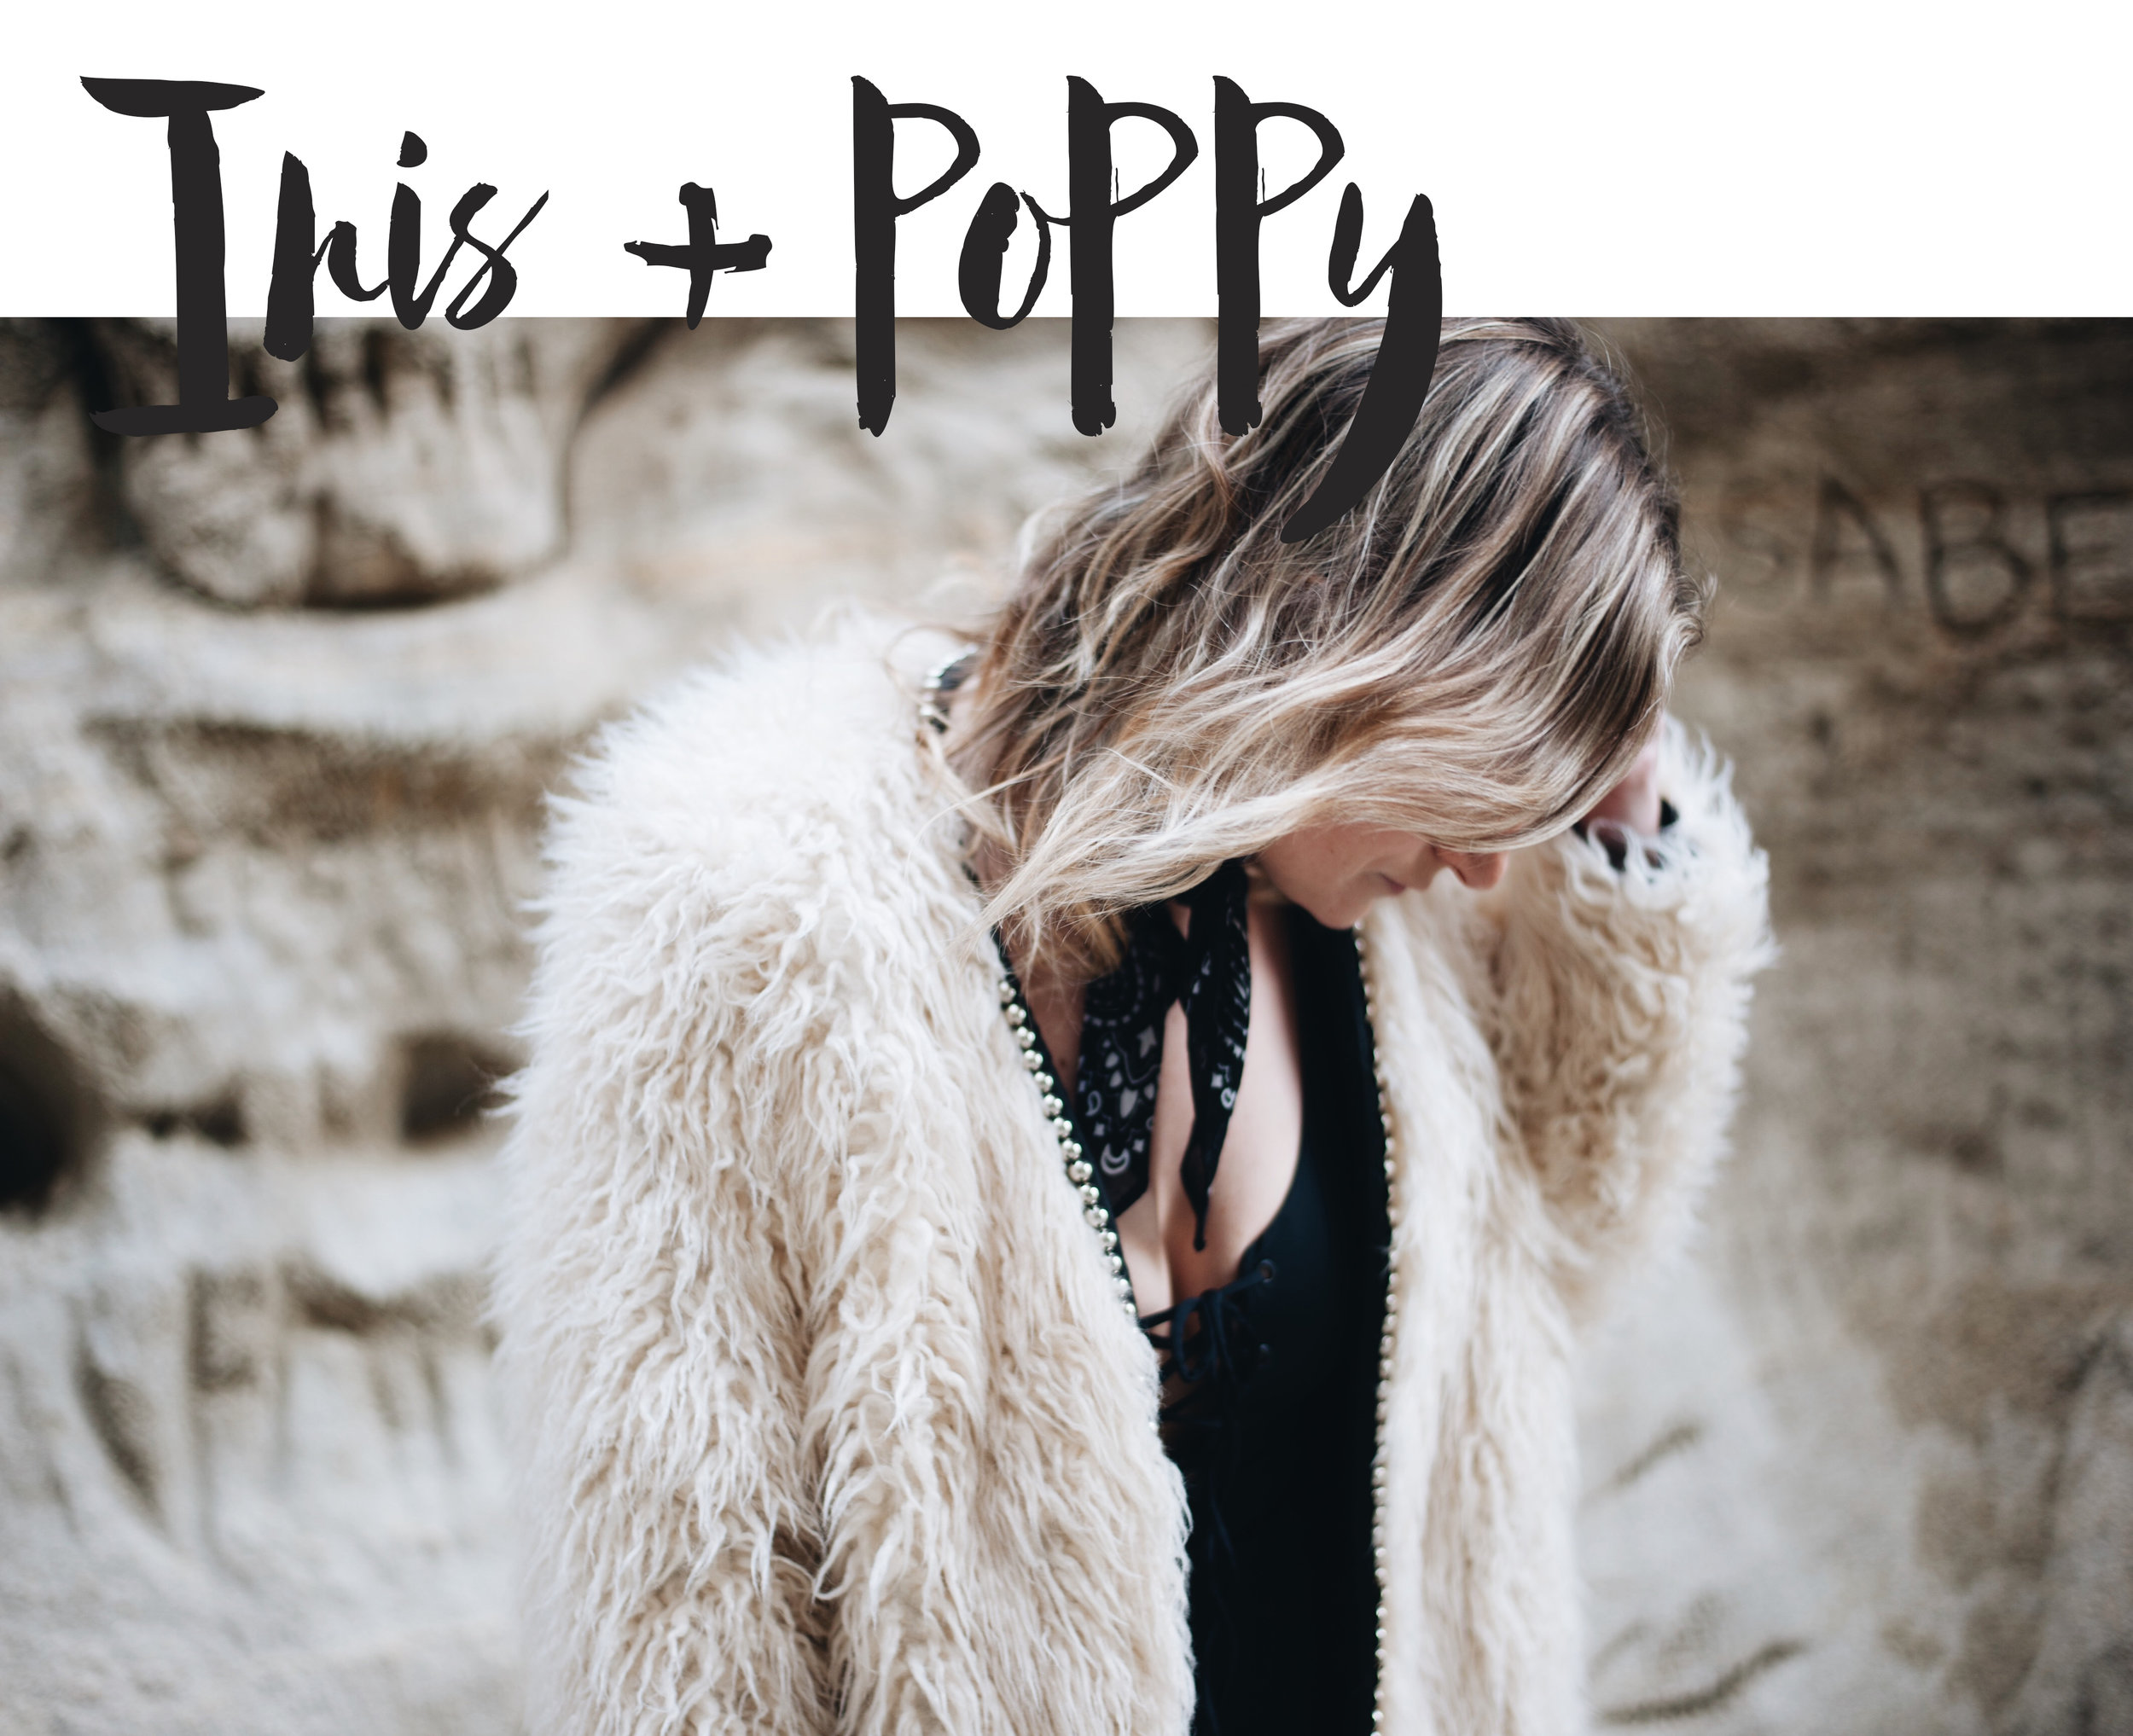 Check out a fun little collaboration with IRIS + POPPY. A fun mixture of brands and styles to create a sweet little punk rock twist. xx